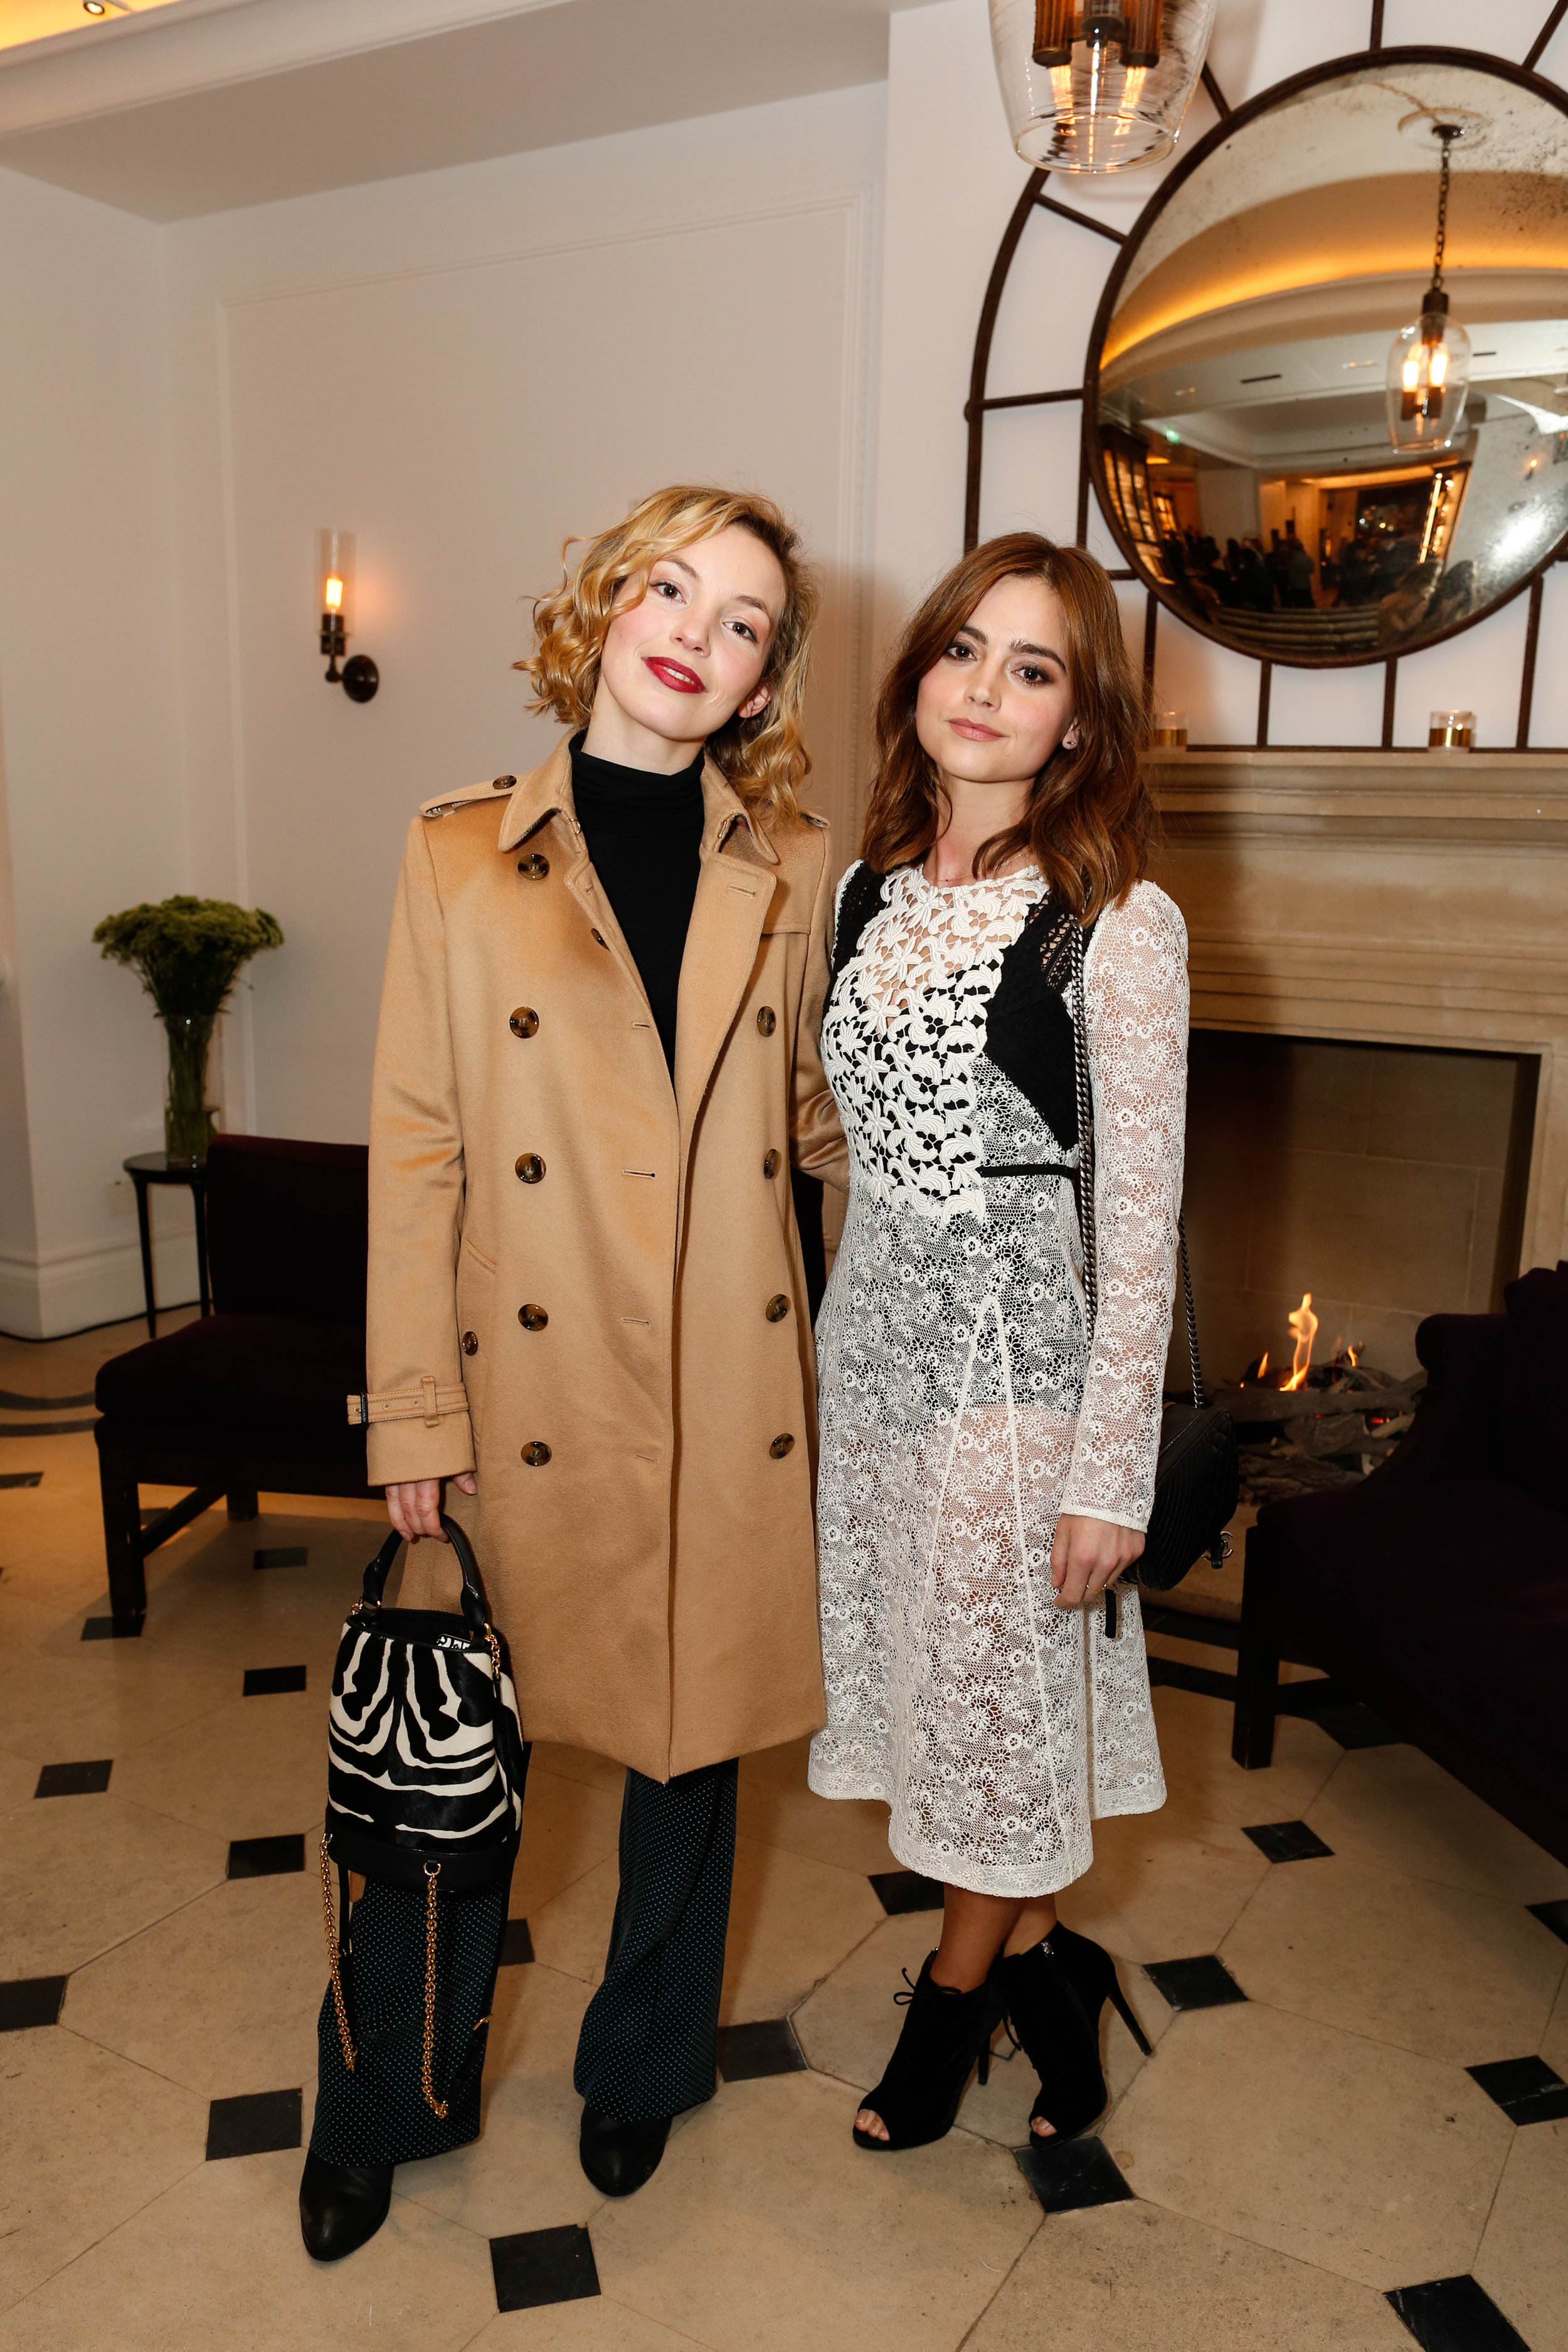 Jenna Coleman and Perdita Weeks wearing Burberry at the Burberry So It Goes event at Thomas's, London, 9th February 2016